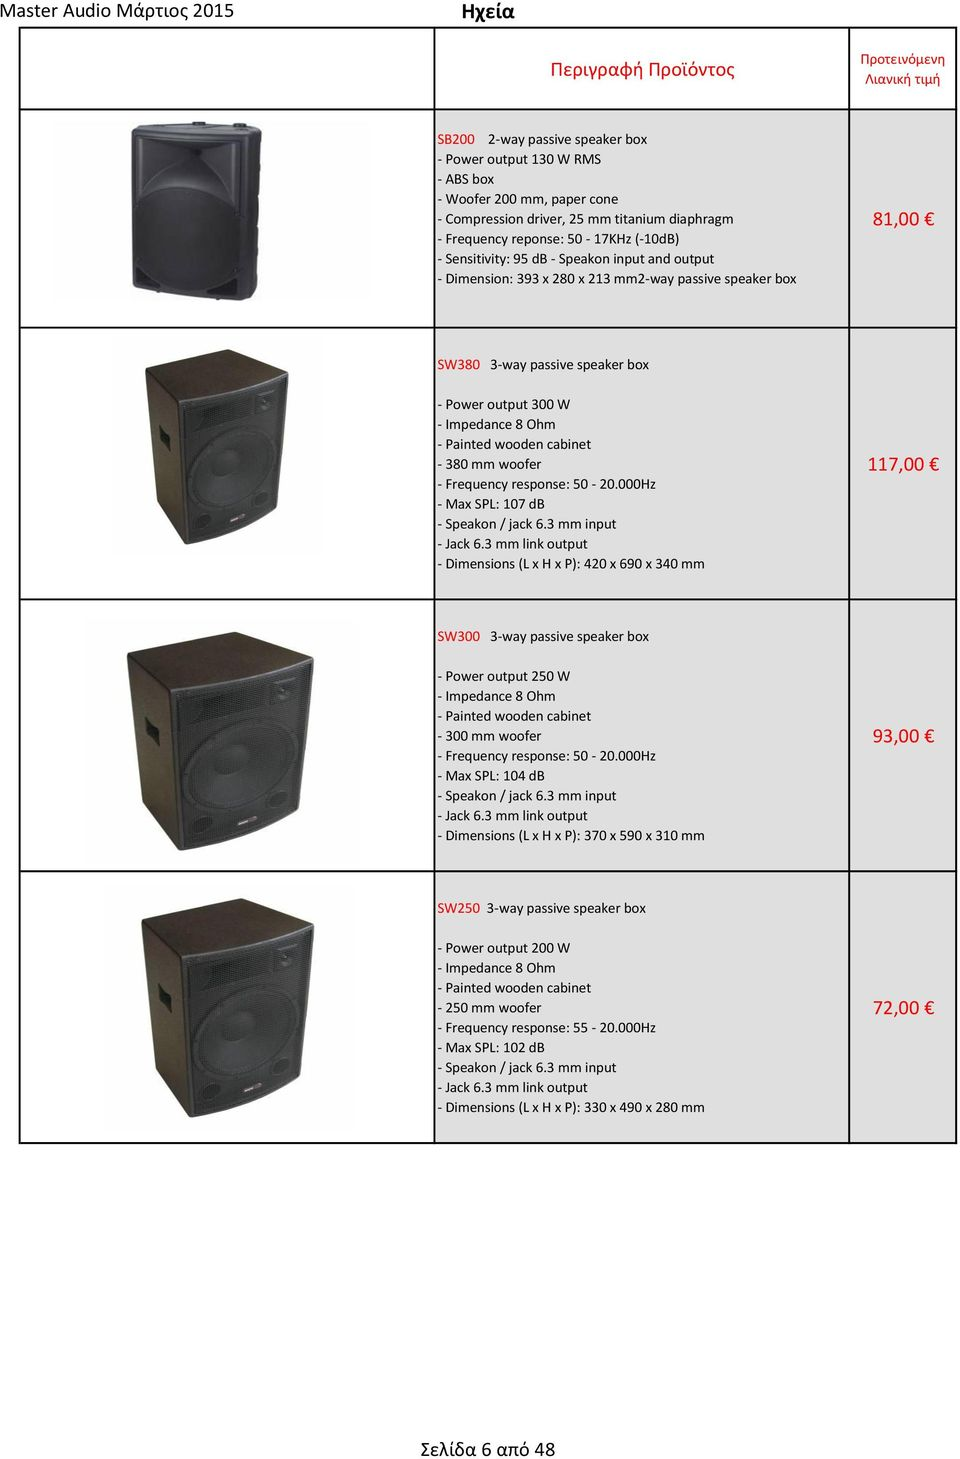 cabinet - 380 mm woofer - Frequency response: 50-20.000Hz - Max SPL: 107 db - Speakon / jack 6.3 mm input - Jack 6.